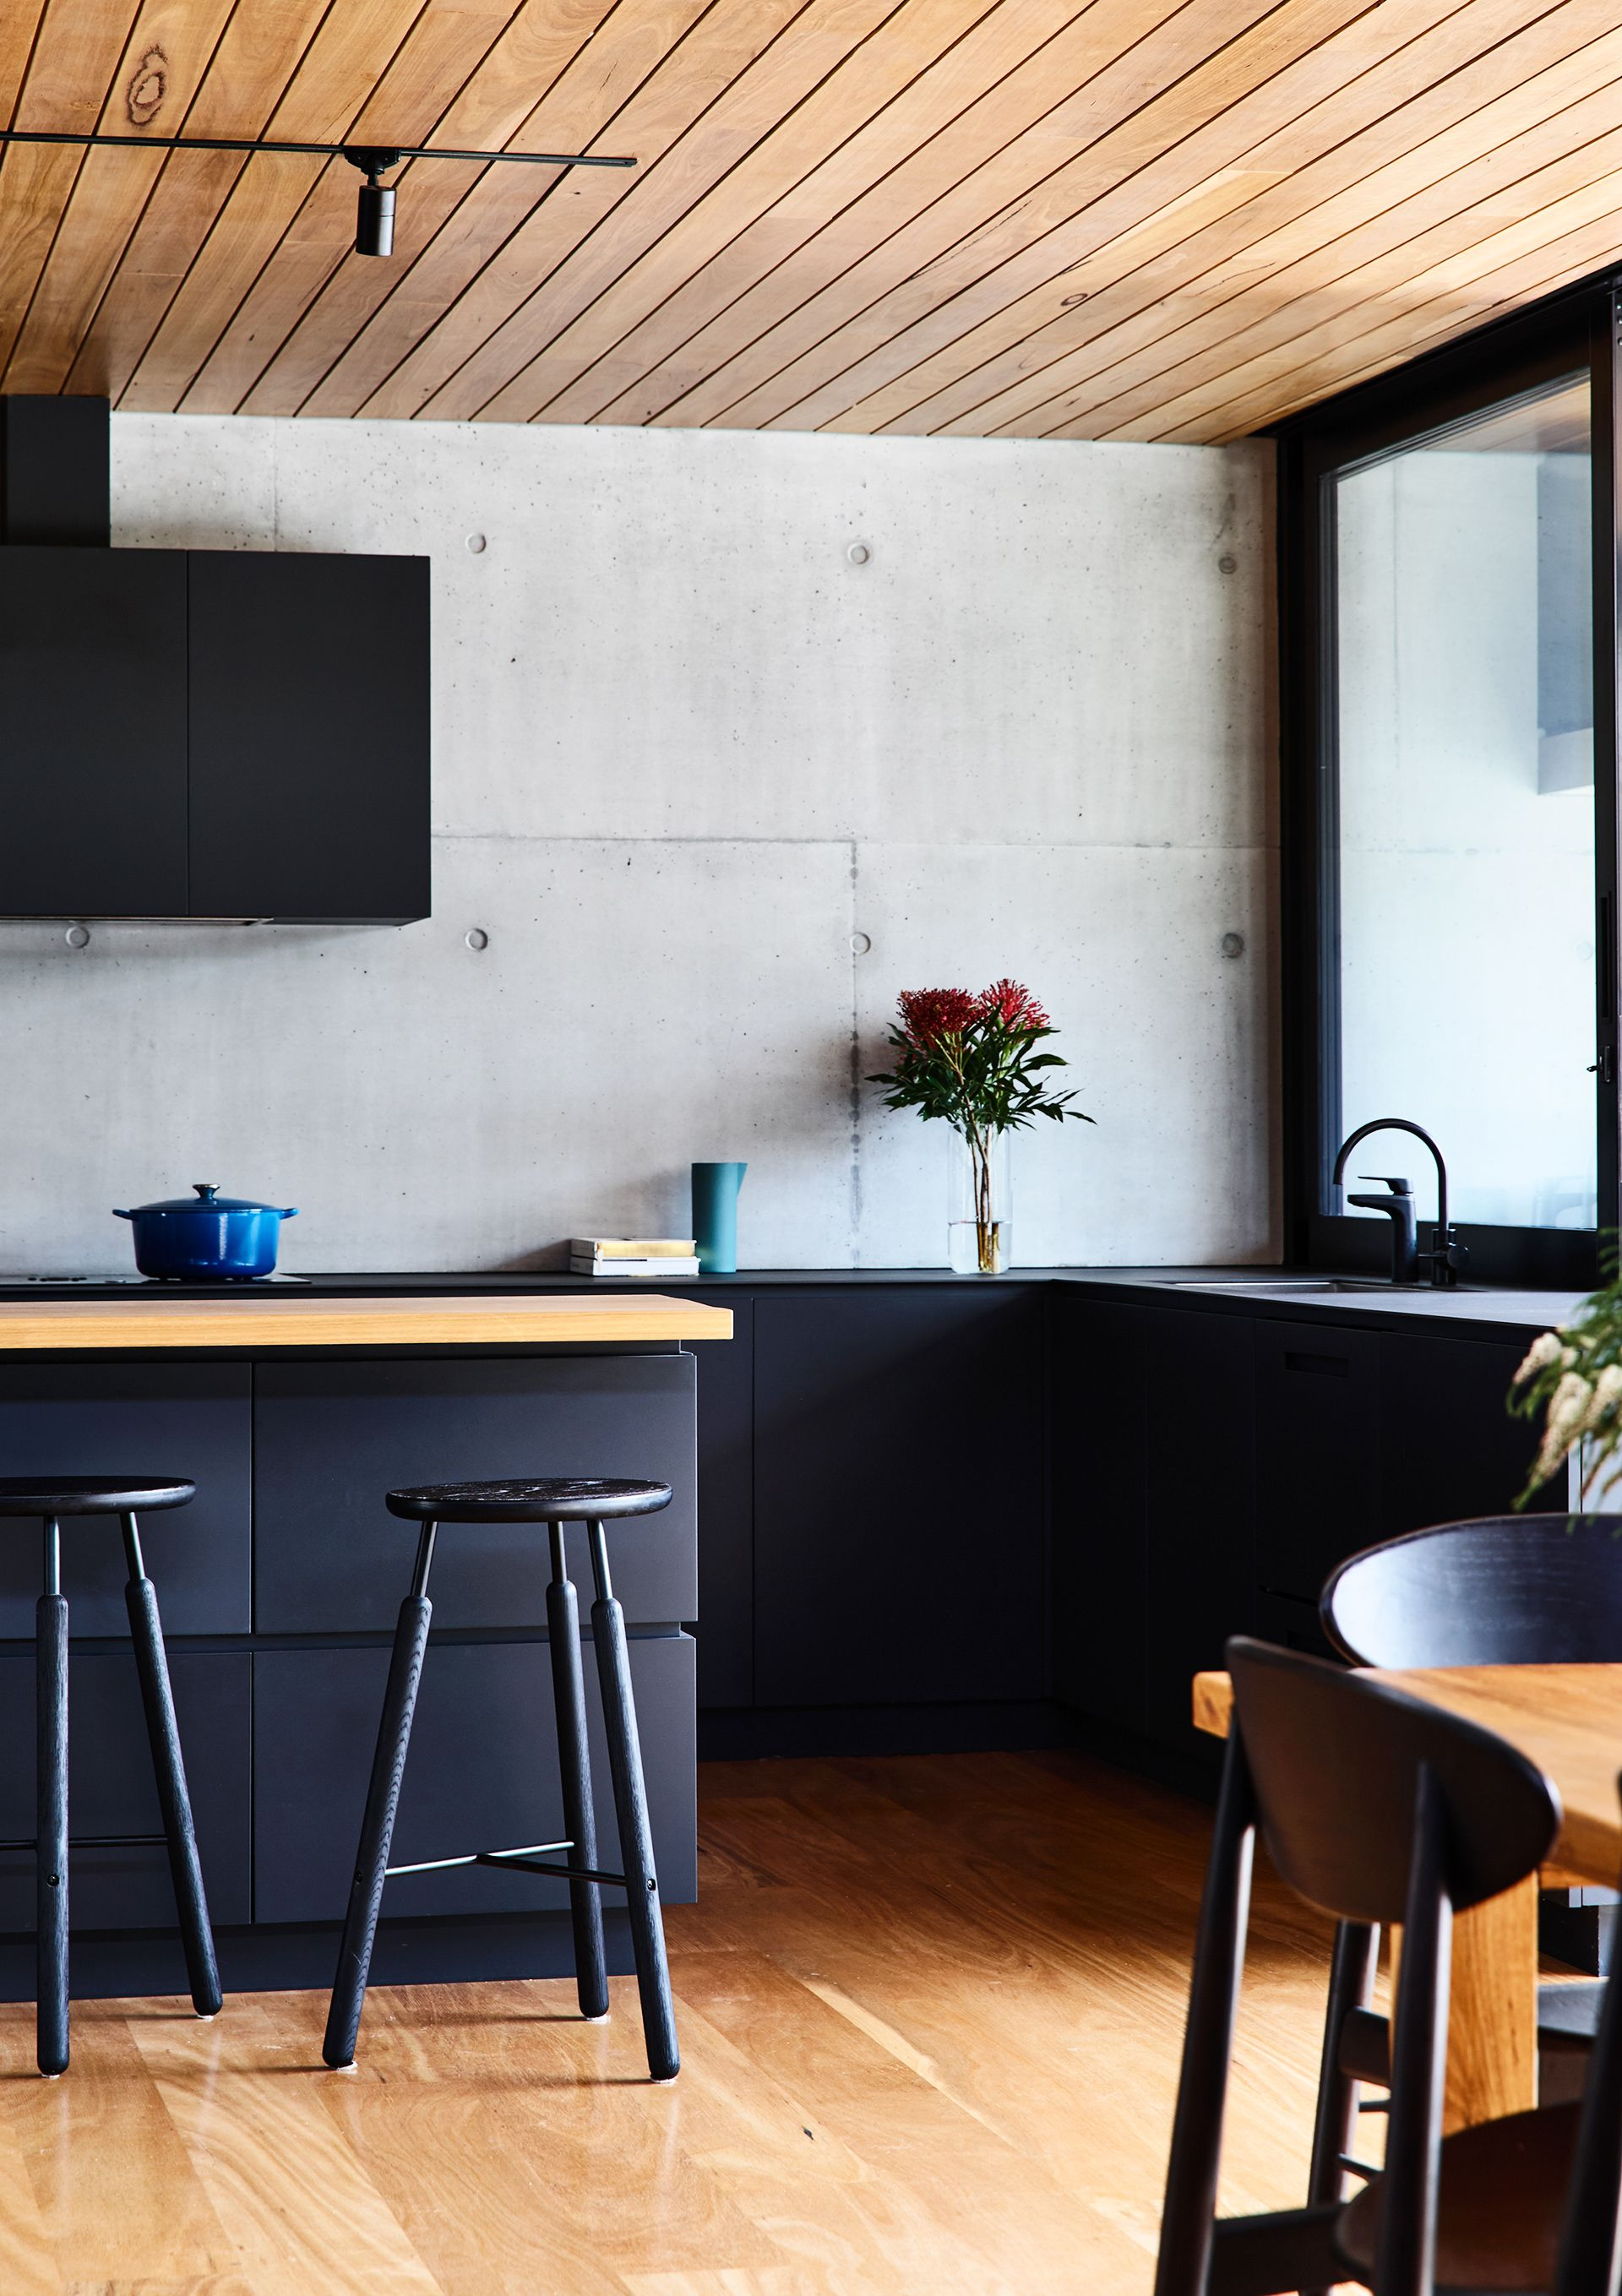 Timber benches are paired with sleek black cabinetry and a raw